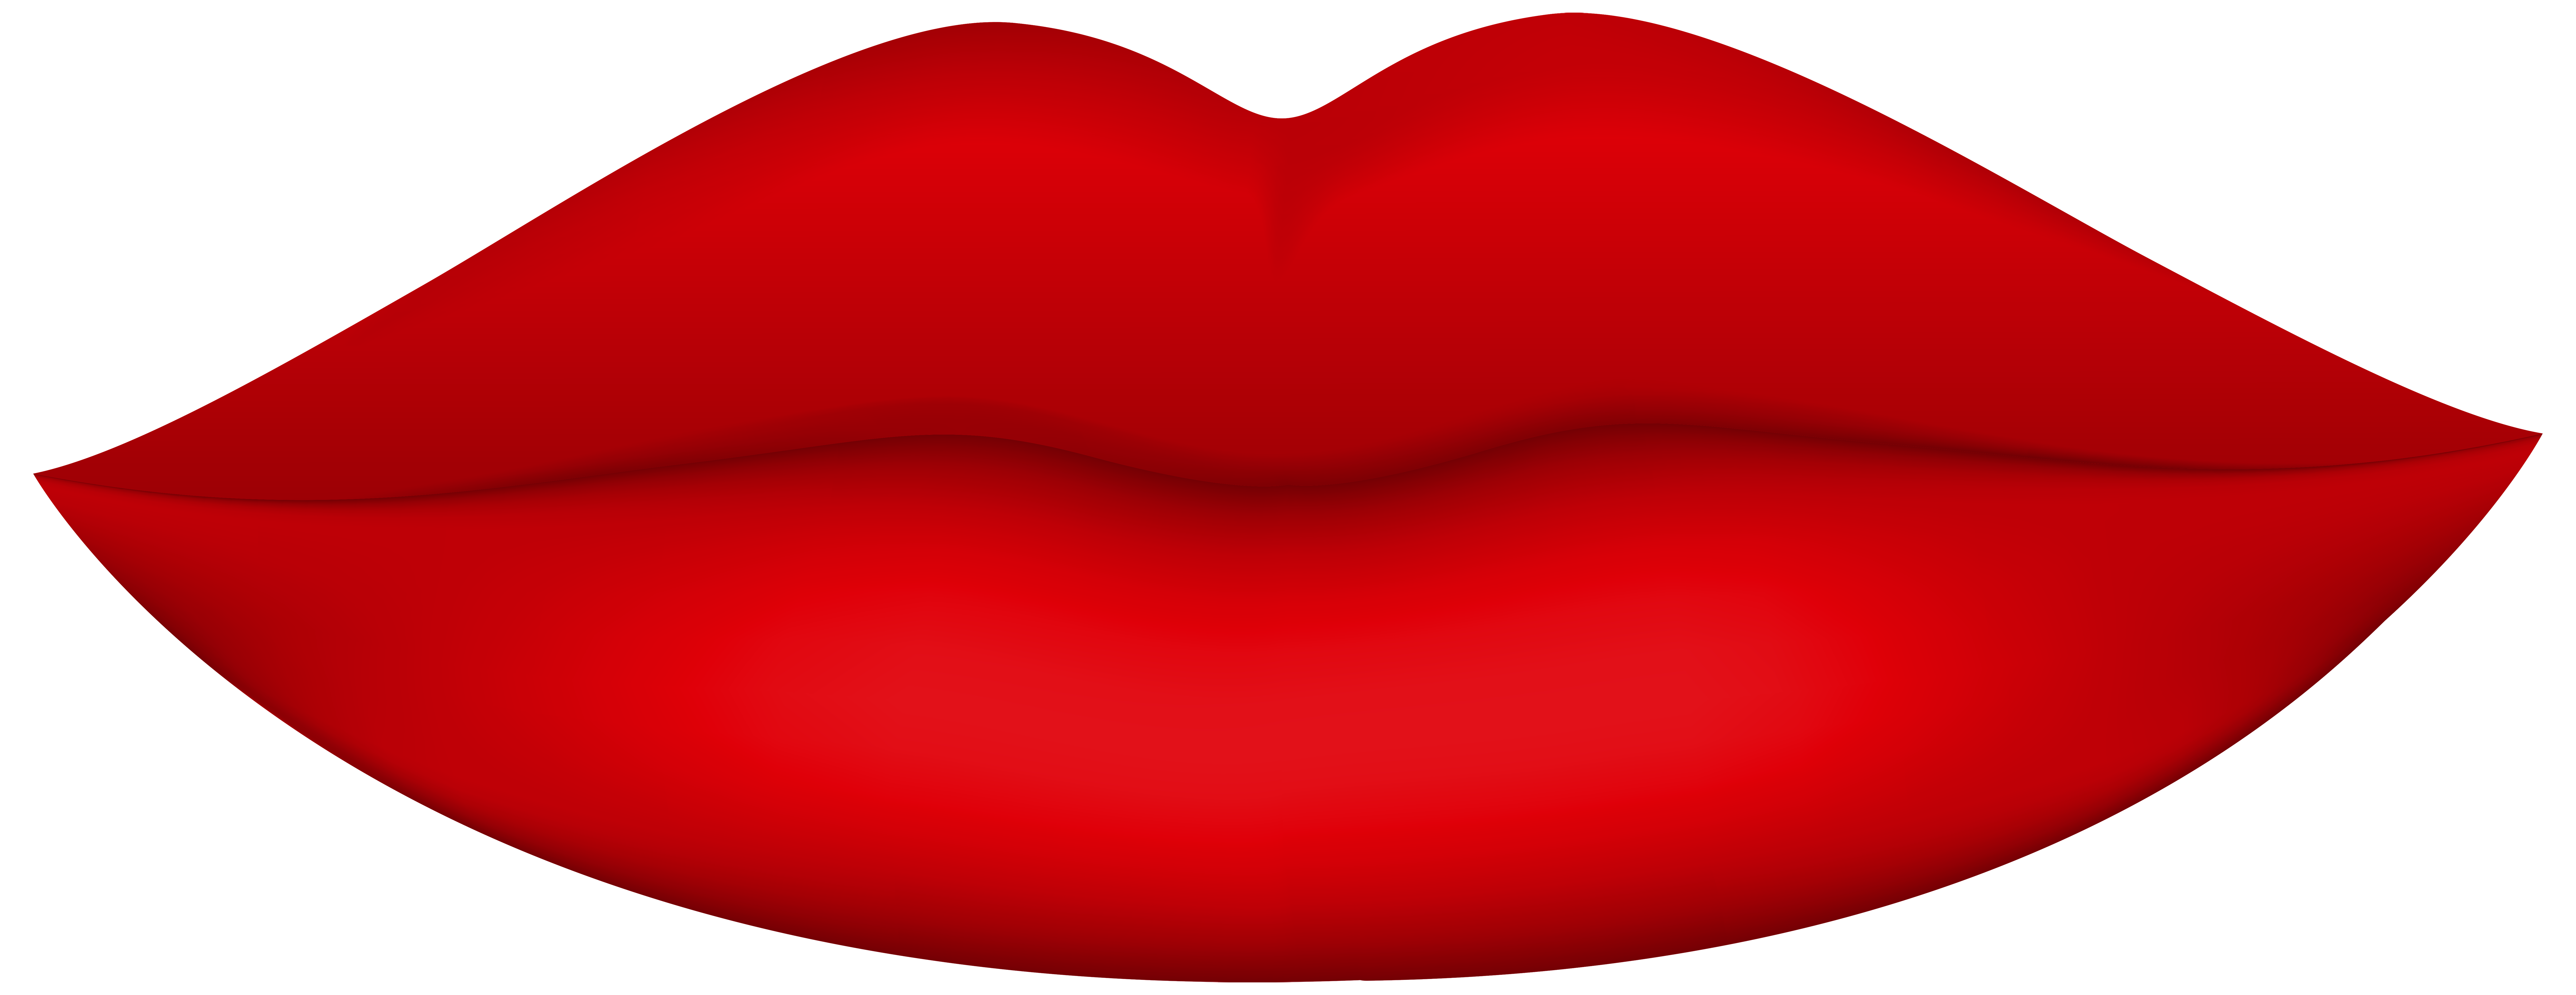 Red Lips PNG Clip Art - Red Lips Clip Art